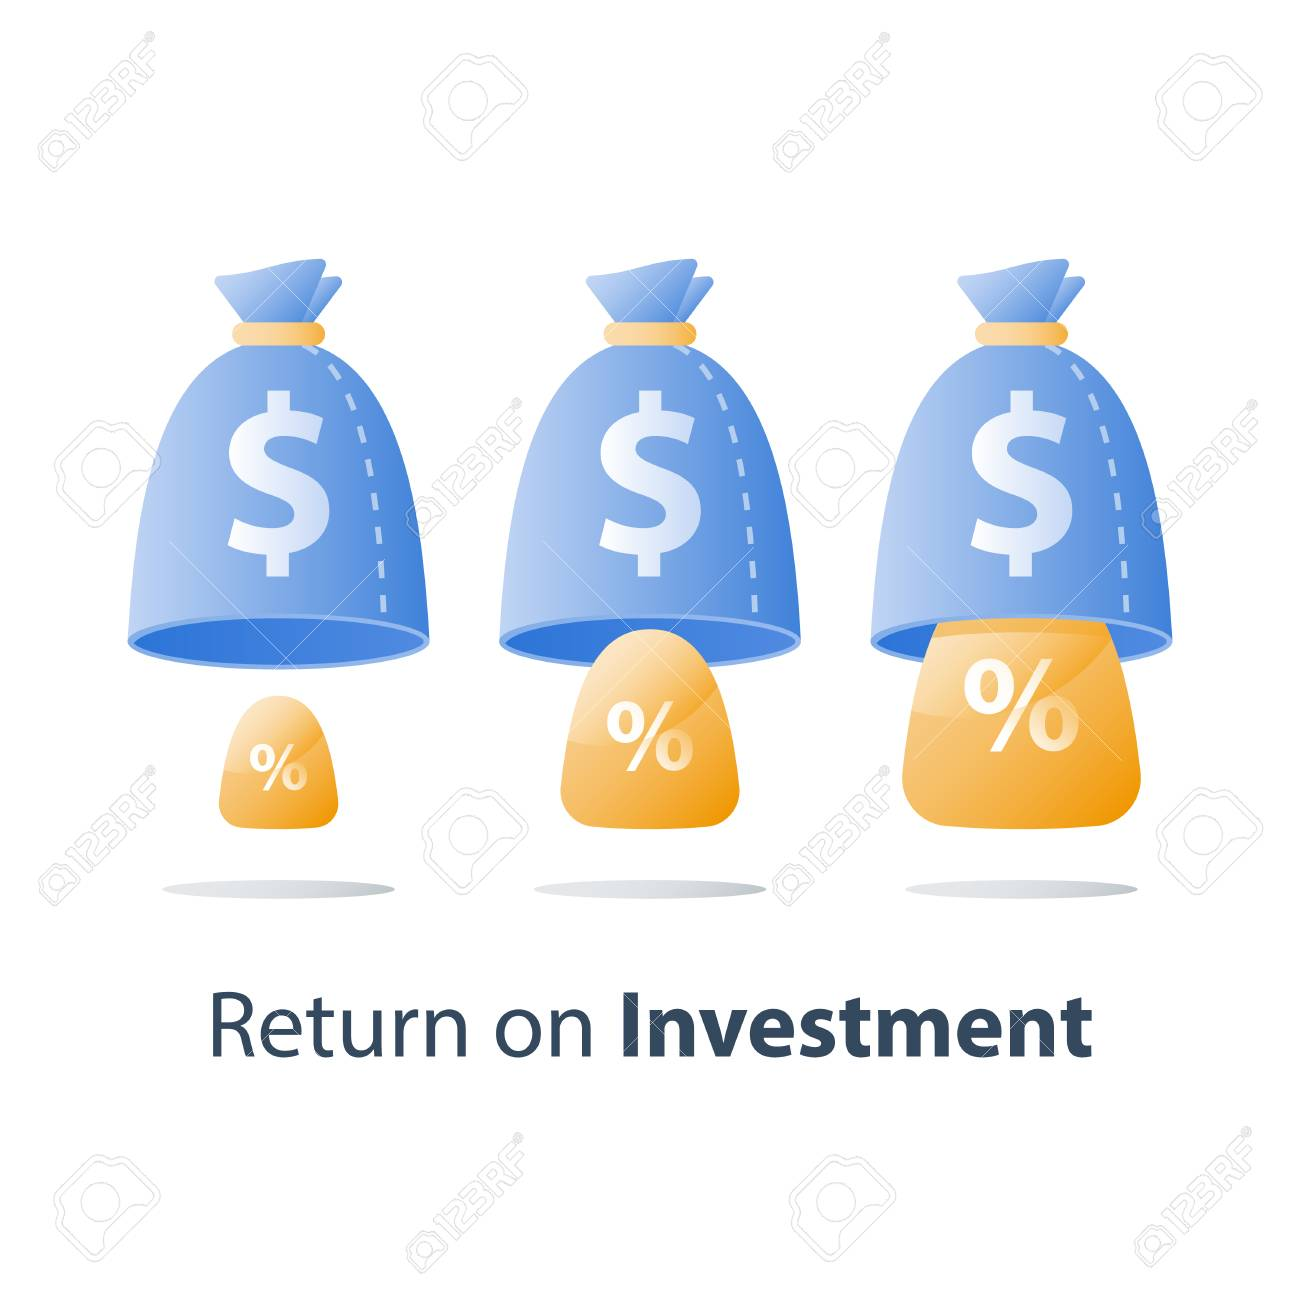 Investment strategies pension funds credit suisse investment banking uae